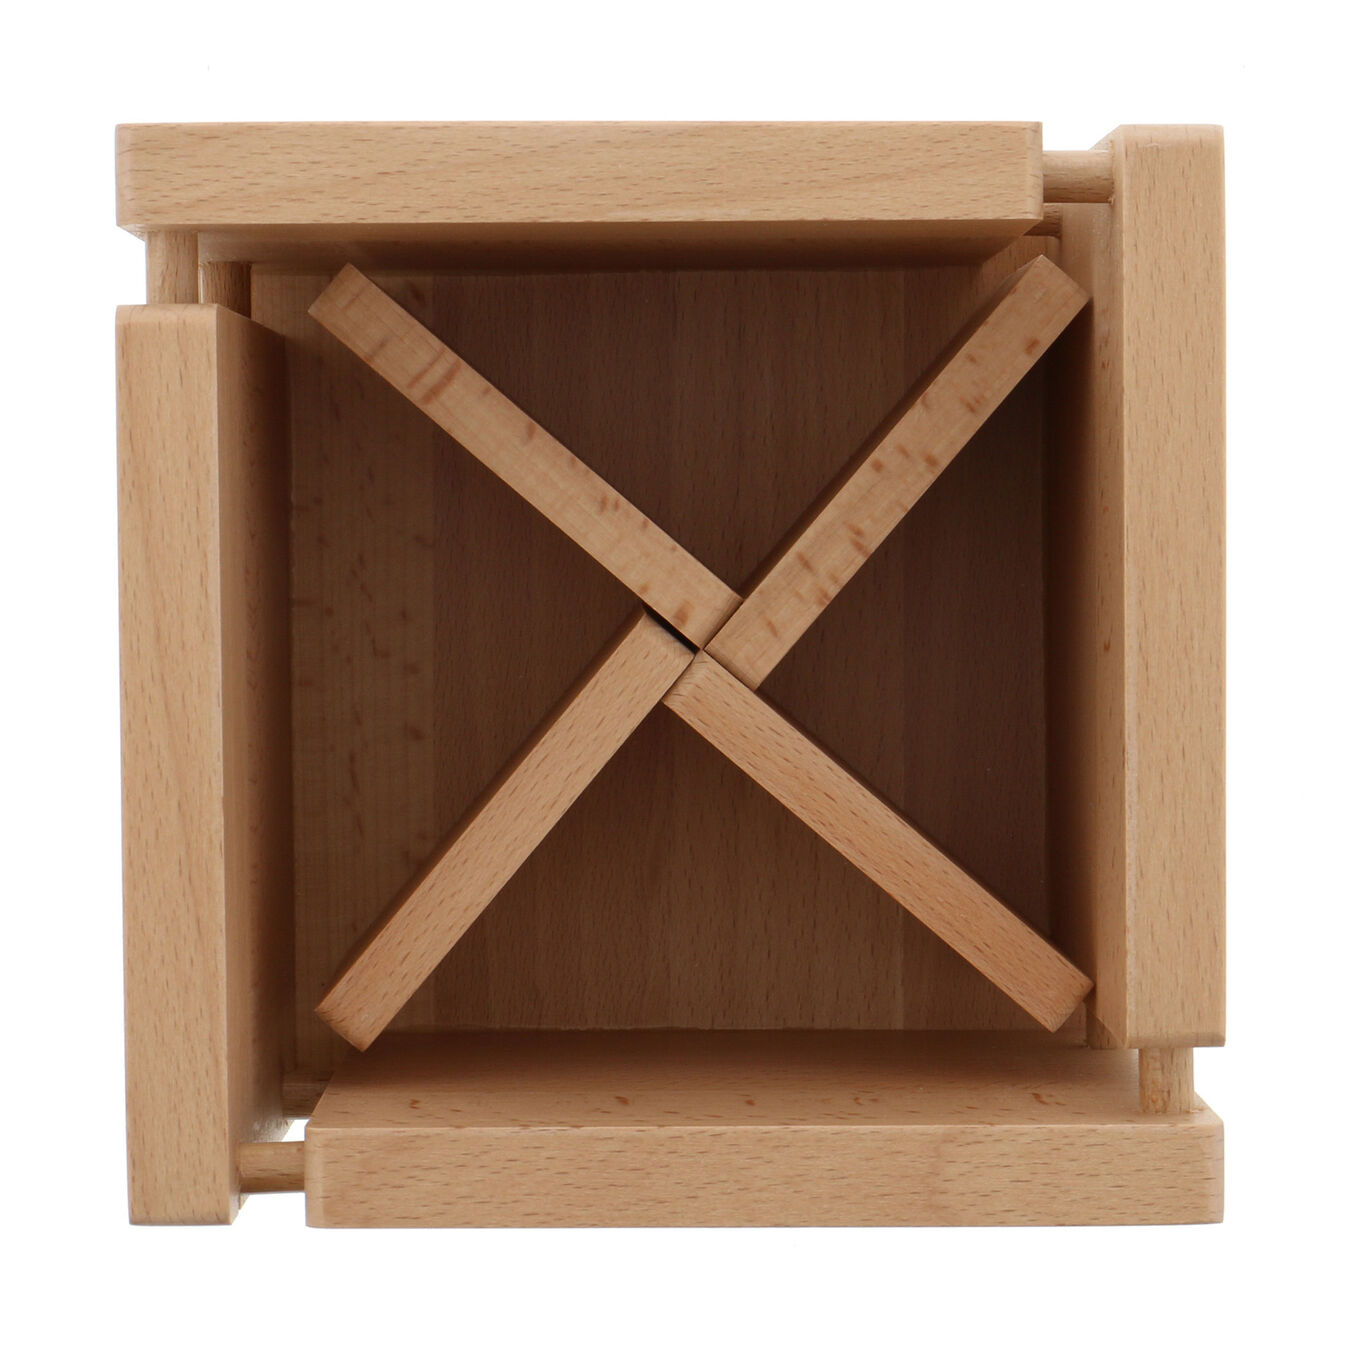 Kitchen Utensil Organizer - Natural Beechwood,,large 4